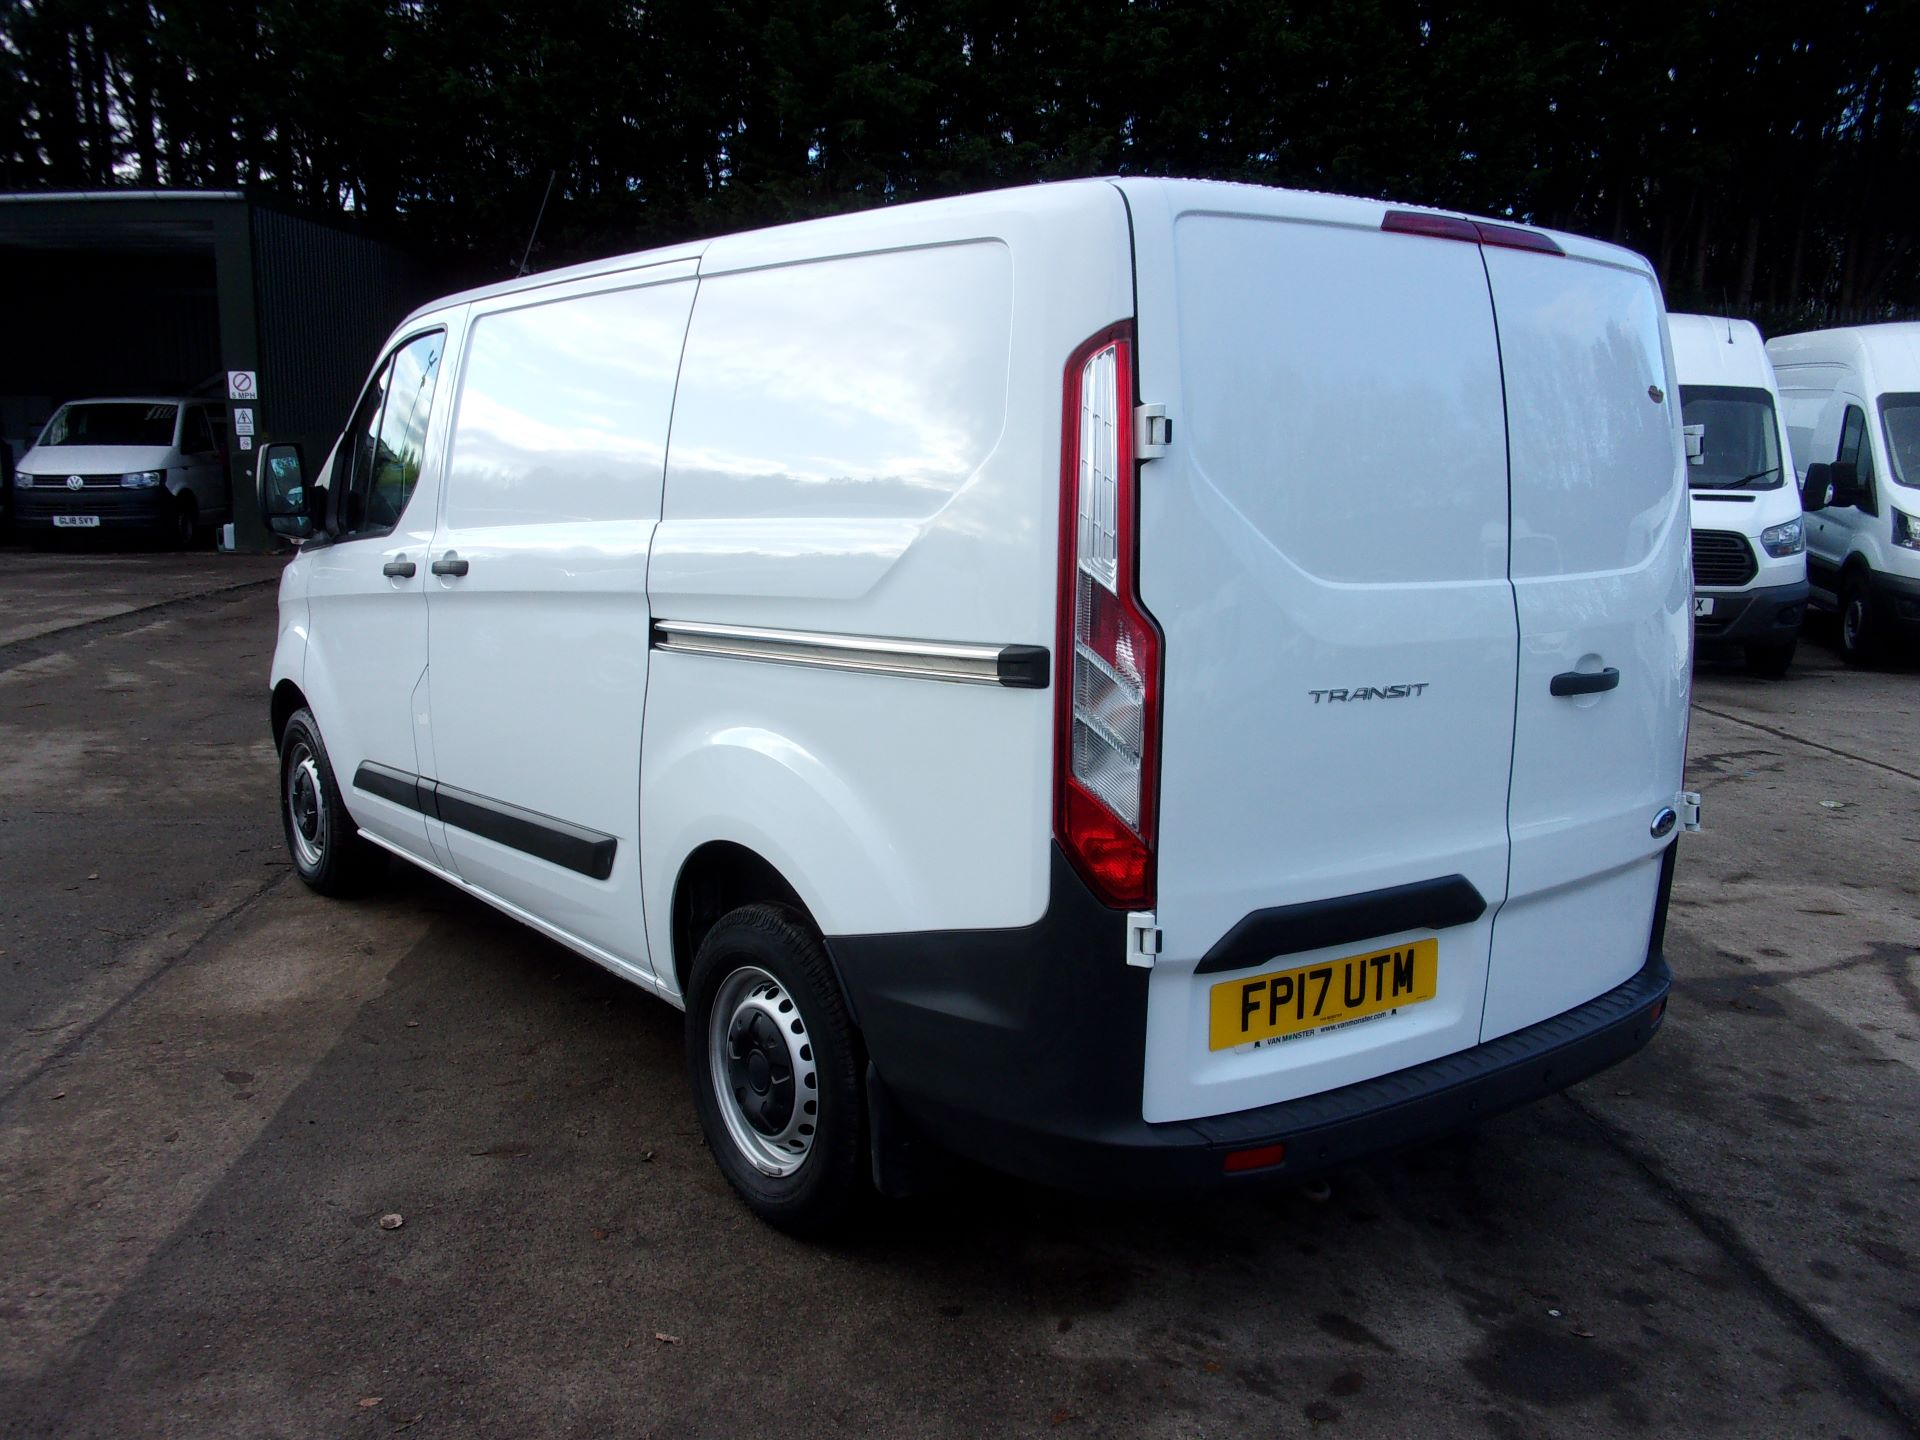 2017 Ford Transit Custom 290 L1 DIESEL FWD 2.0 TDCI 105PS LOW ROOF VAN EURO 6 *LIMITED TO 70MPH* (FP17UTM) Image 11